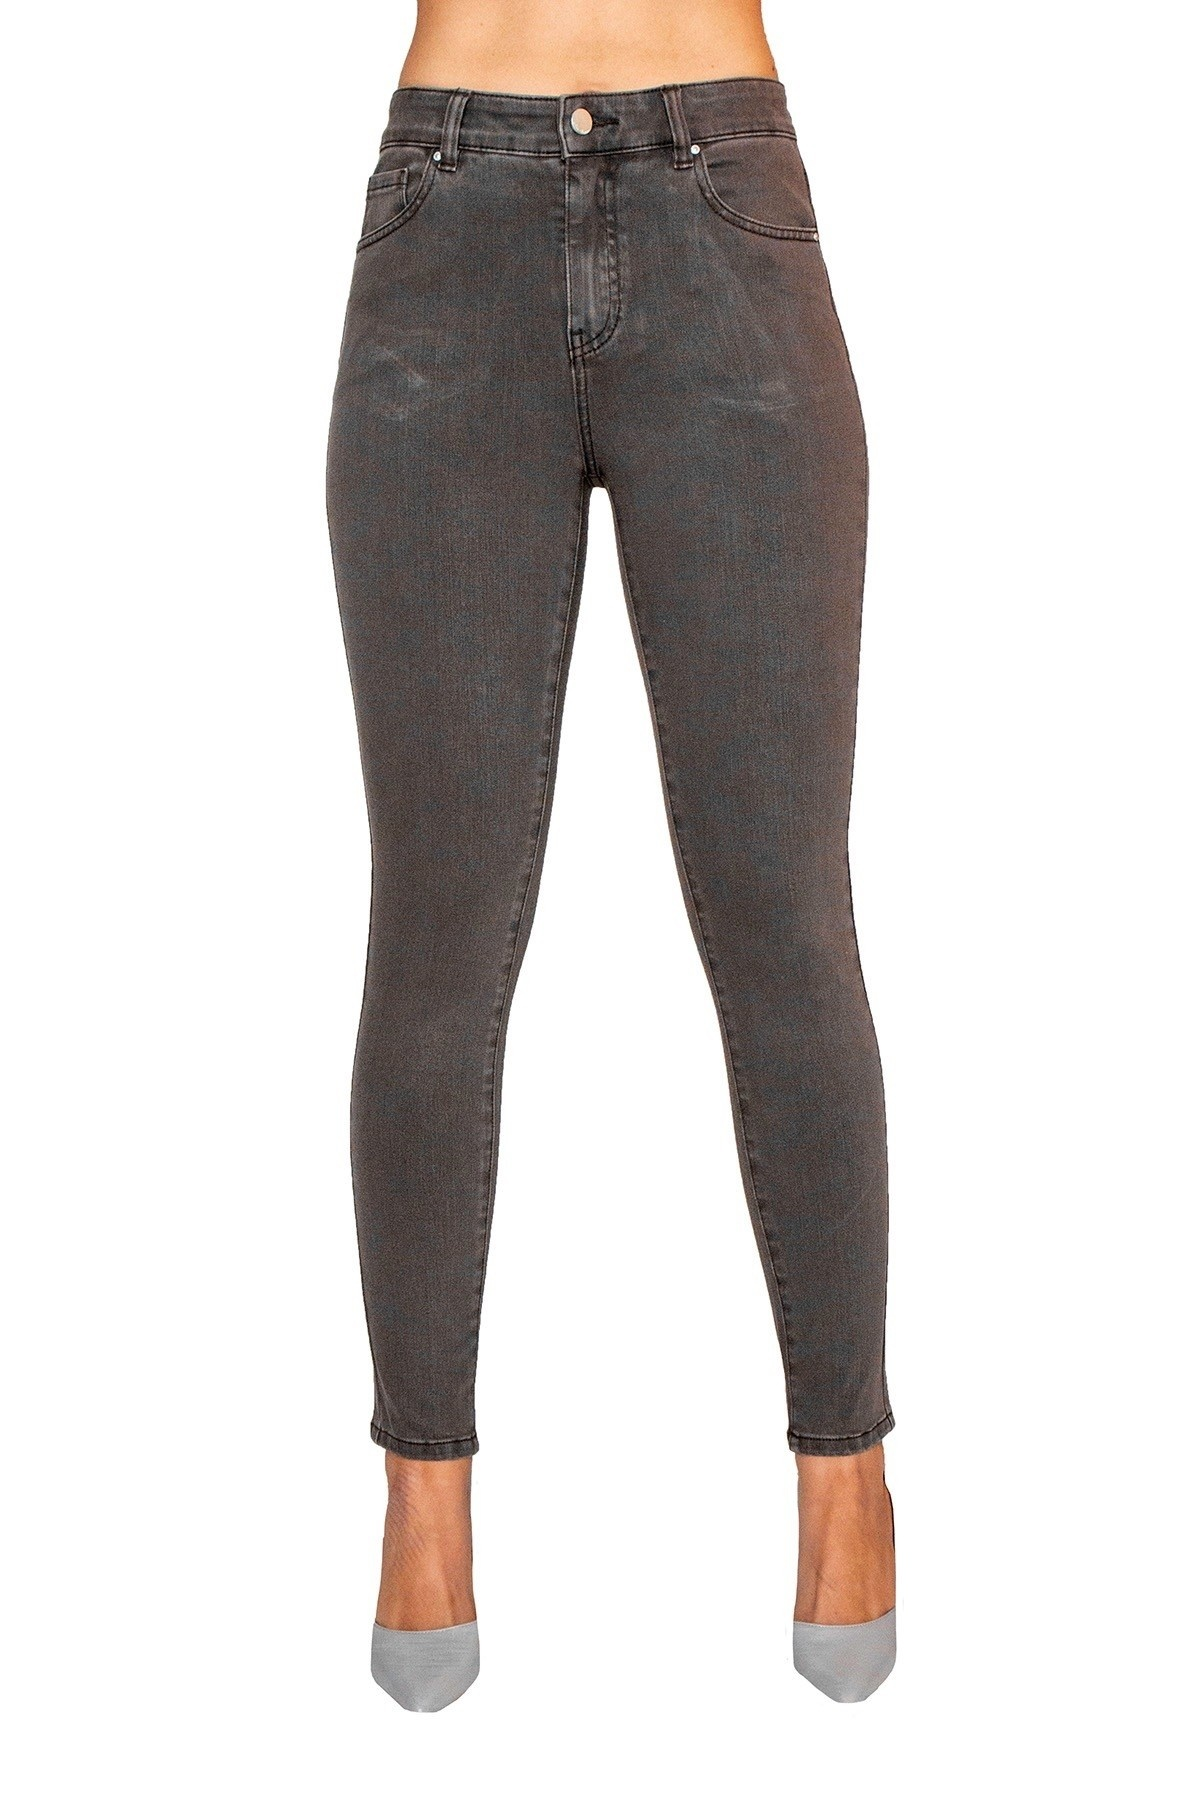 Jackie High Waist Skinny Jean By: Lior Paris